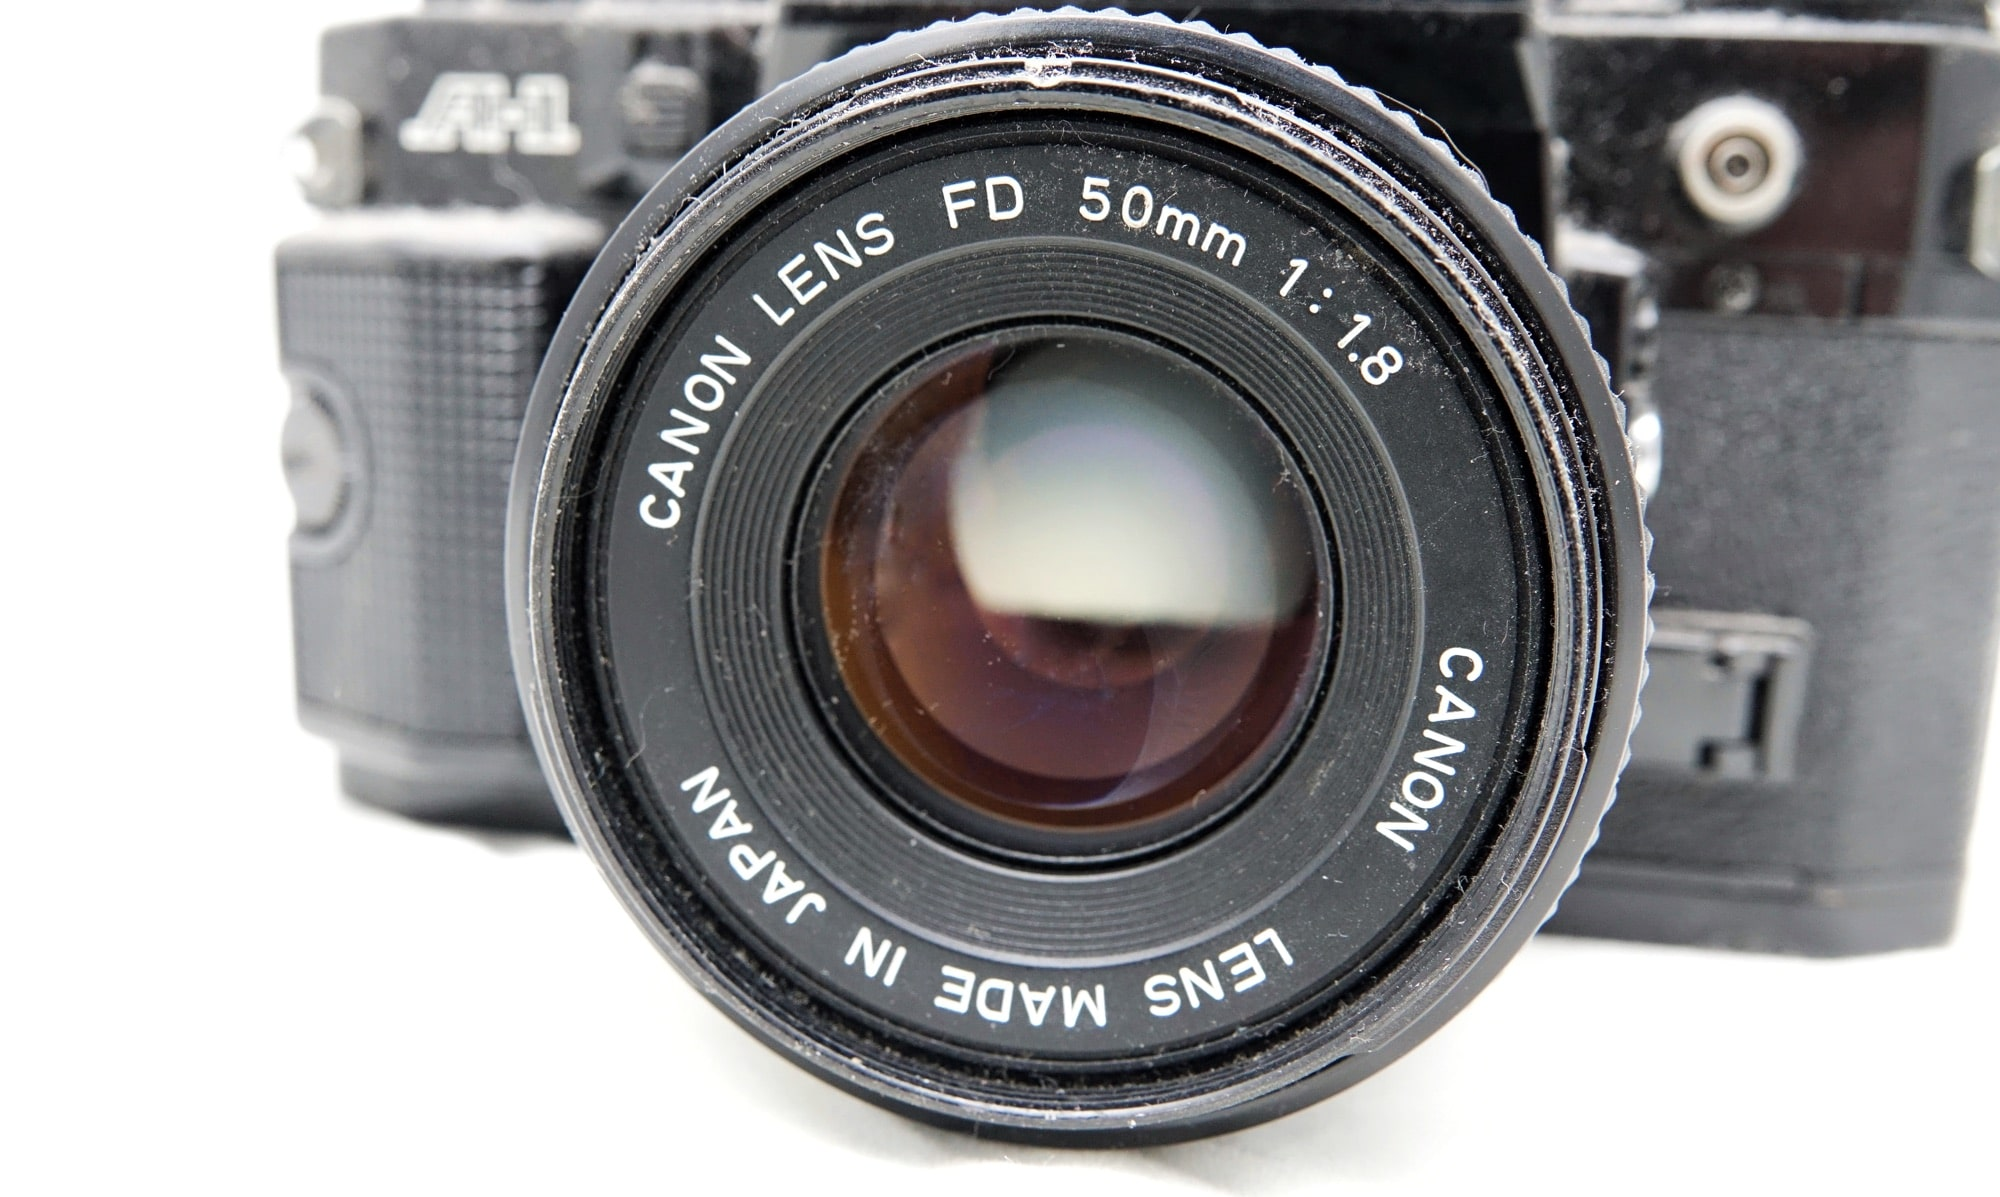 An old Canon low-light 50mm F1.8 on a Canon A1 film camera